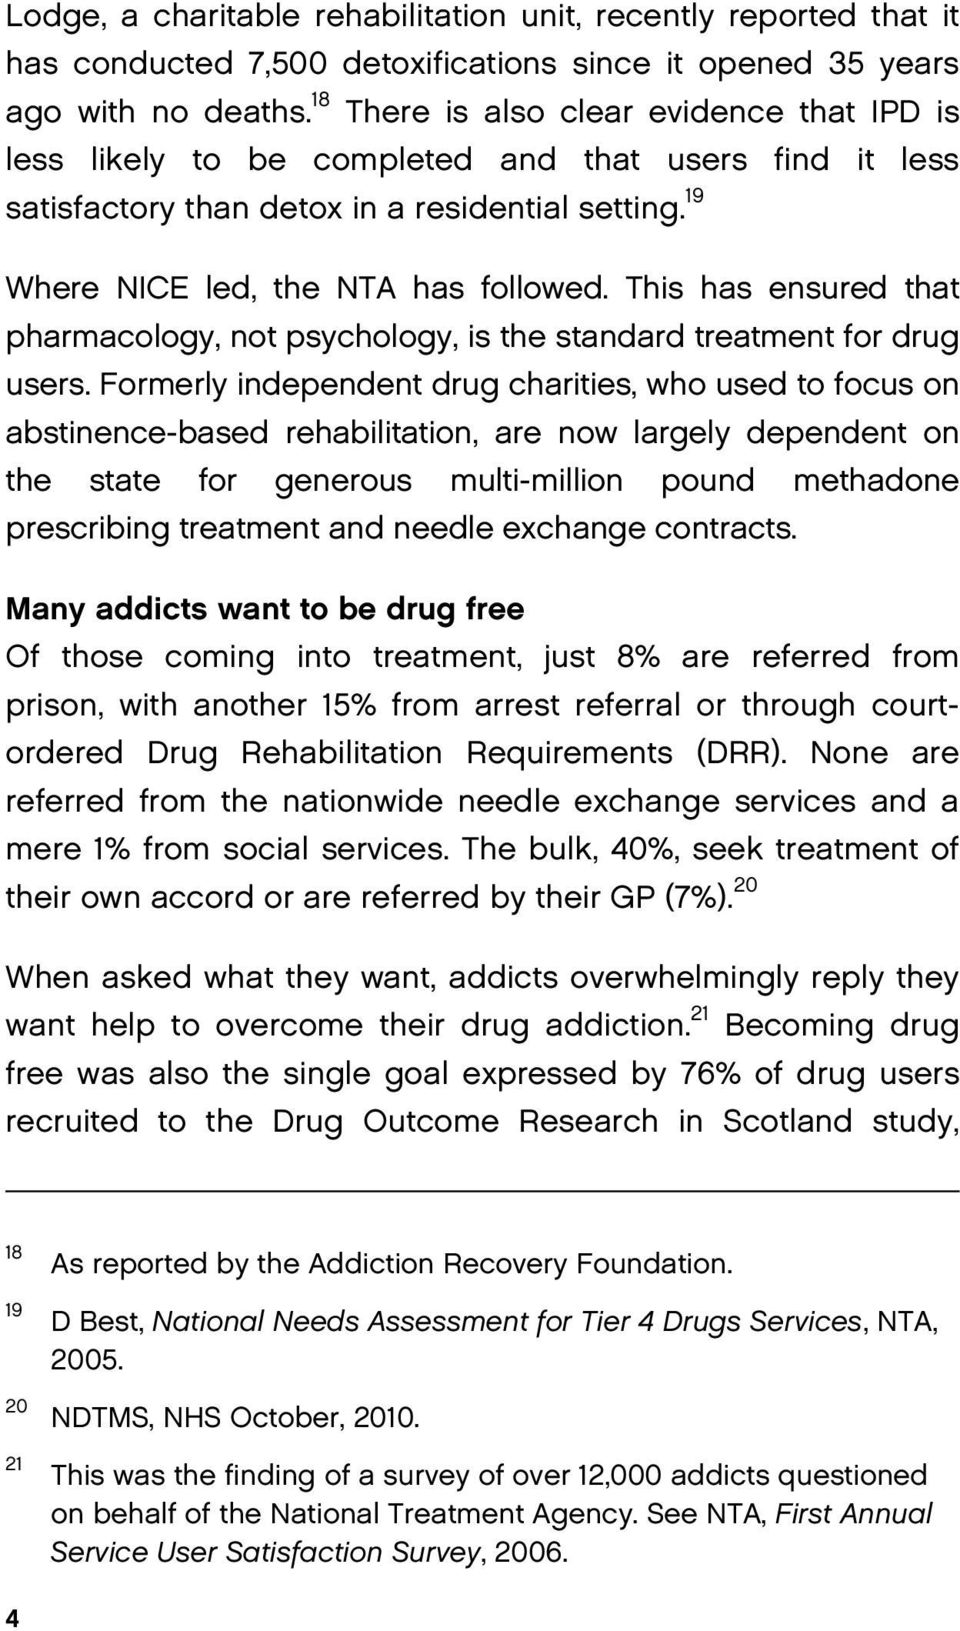 This has ensured that pharmacology, not psychology, is the standard treatment for drug users.